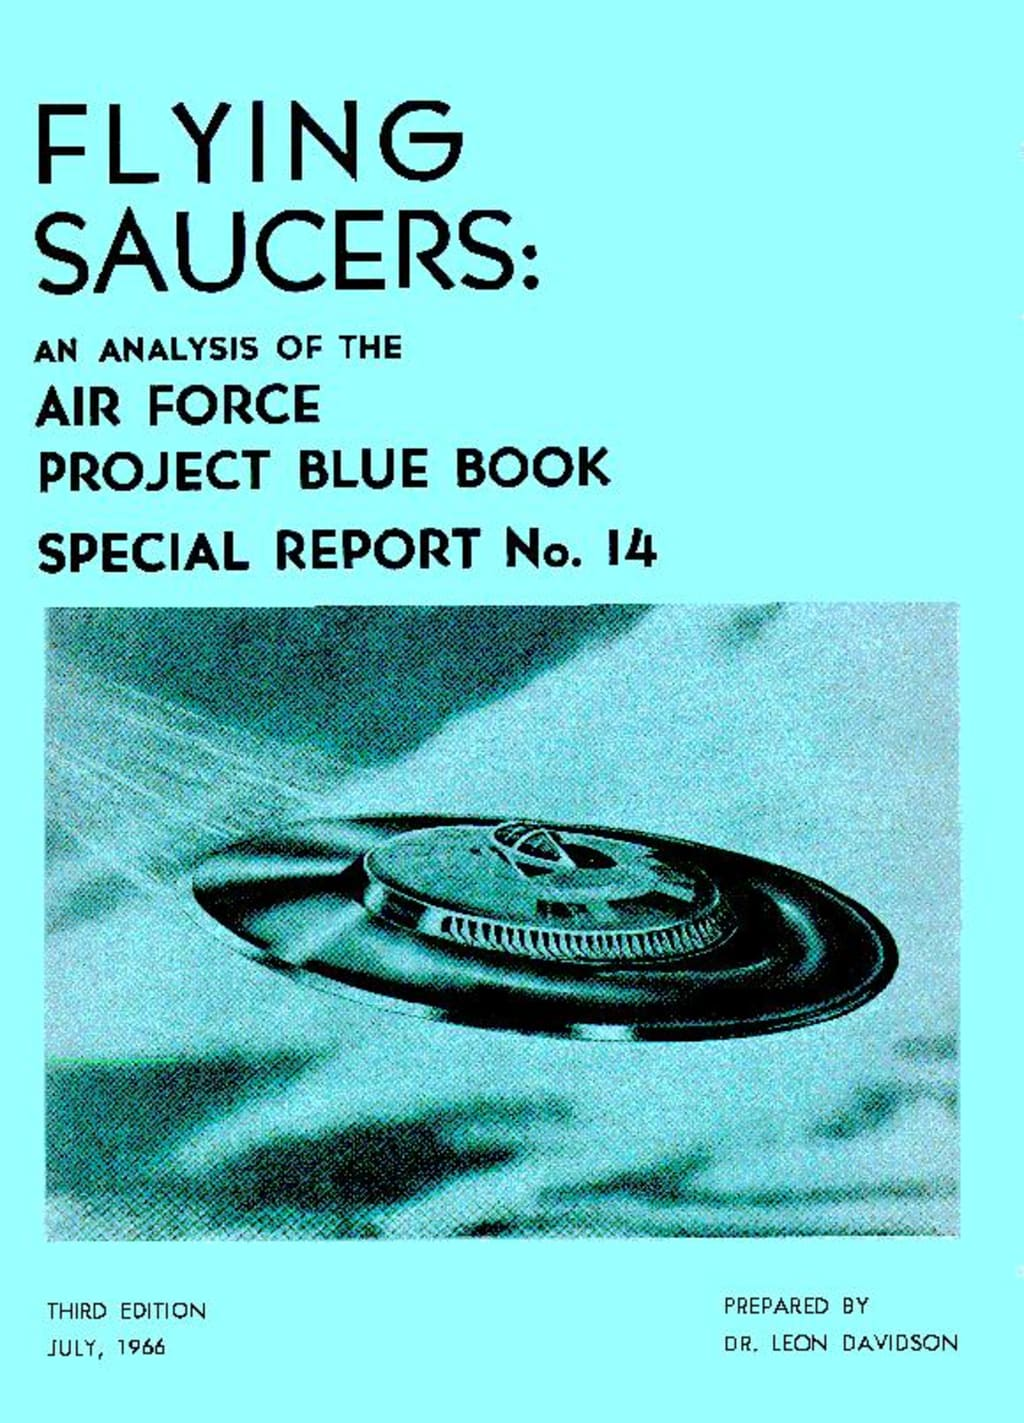 Is Project Blue Book Extra Terrestrial Subliminal Dissemination?